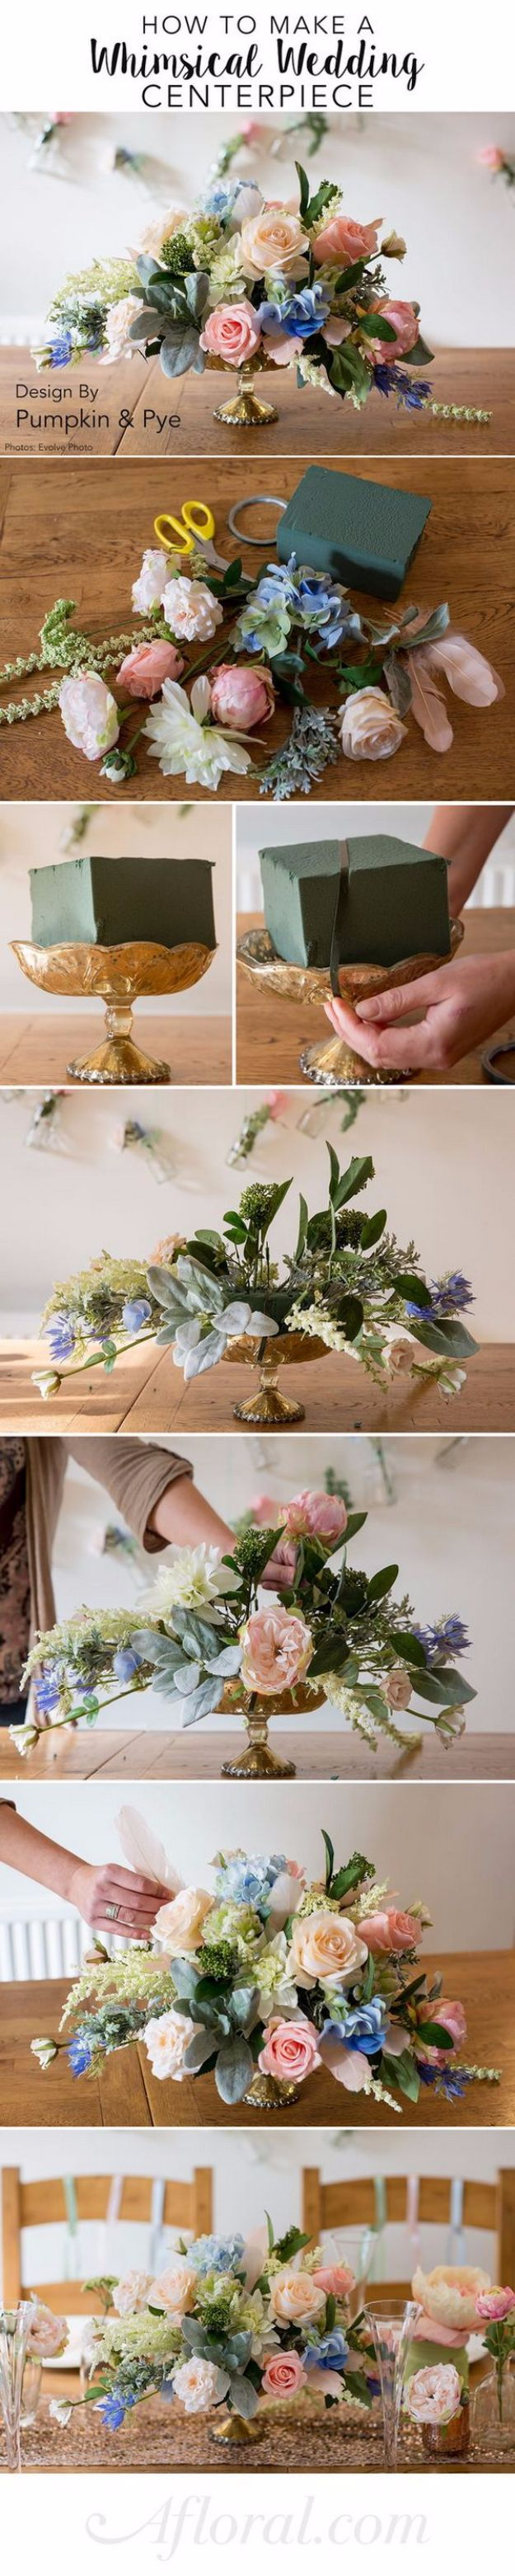 33 best diy wedding centerpieces you can make on a budget diy wedding centerpieces diy whimsical wedding centerpiece do it yourself ideas for brides and solutioingenieria Image collections